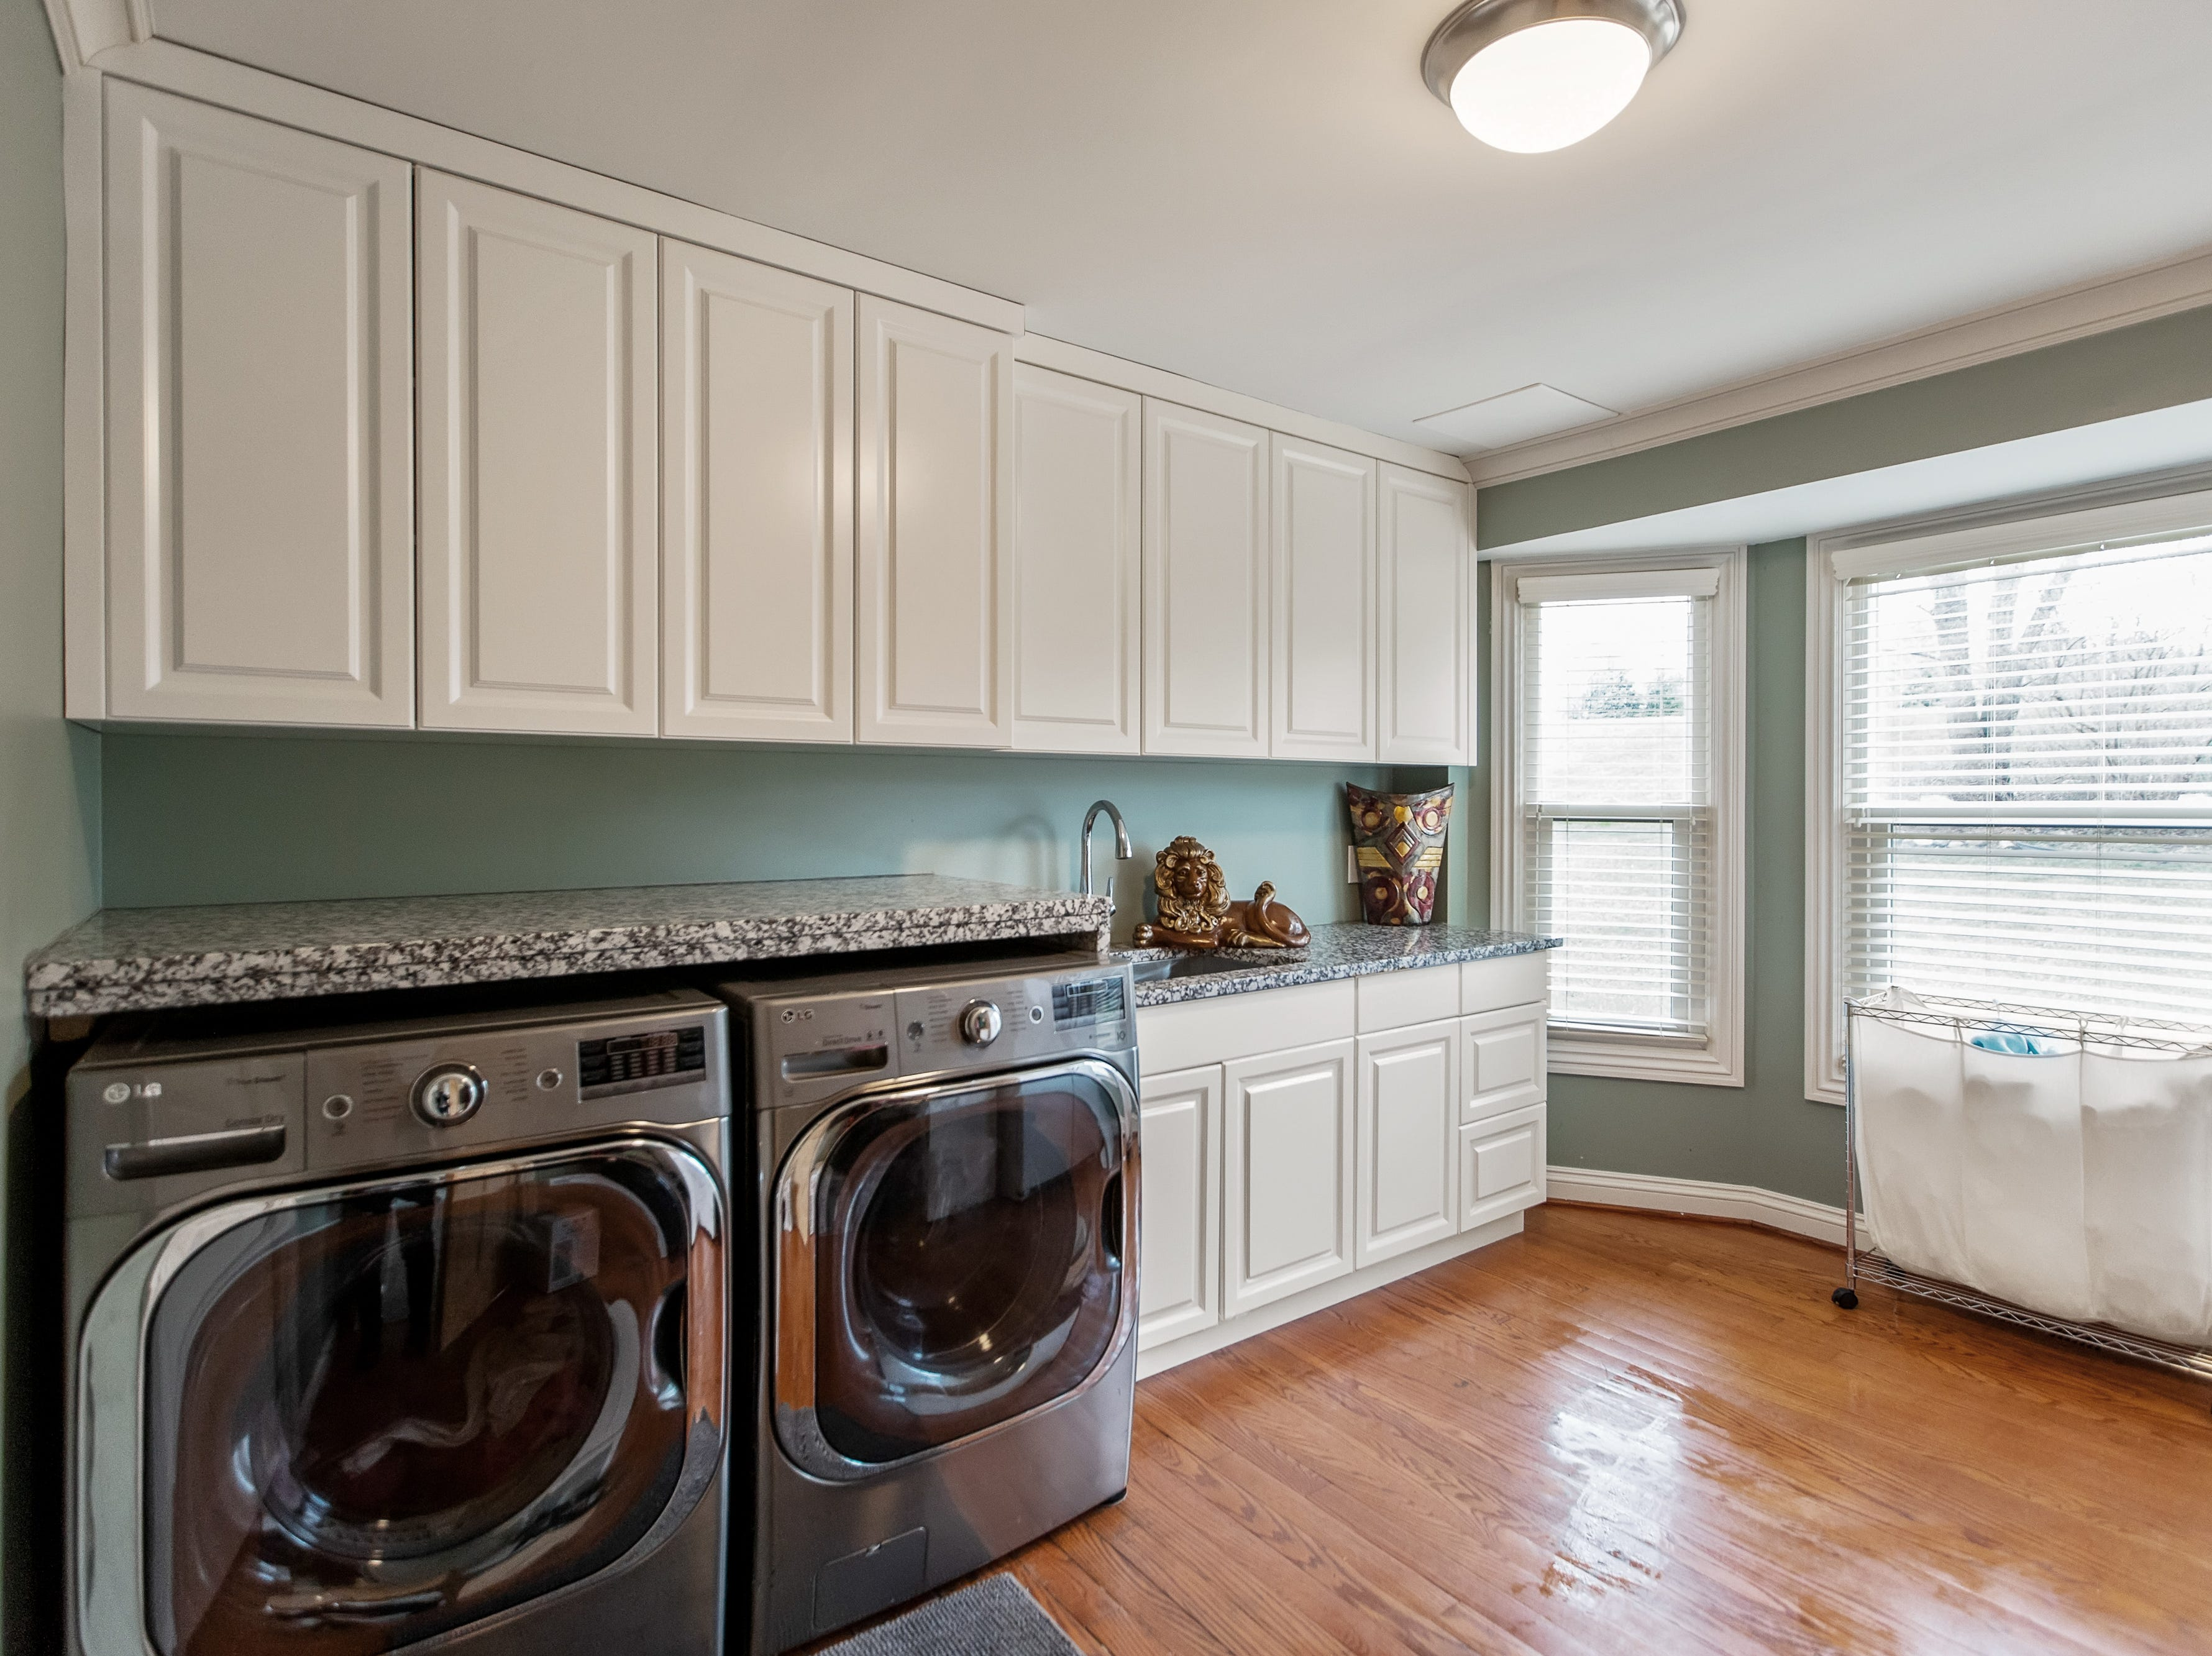 The first floor is designed with two laundry rooms, and the partially finished basement has 500 square feet of comfortable living space.